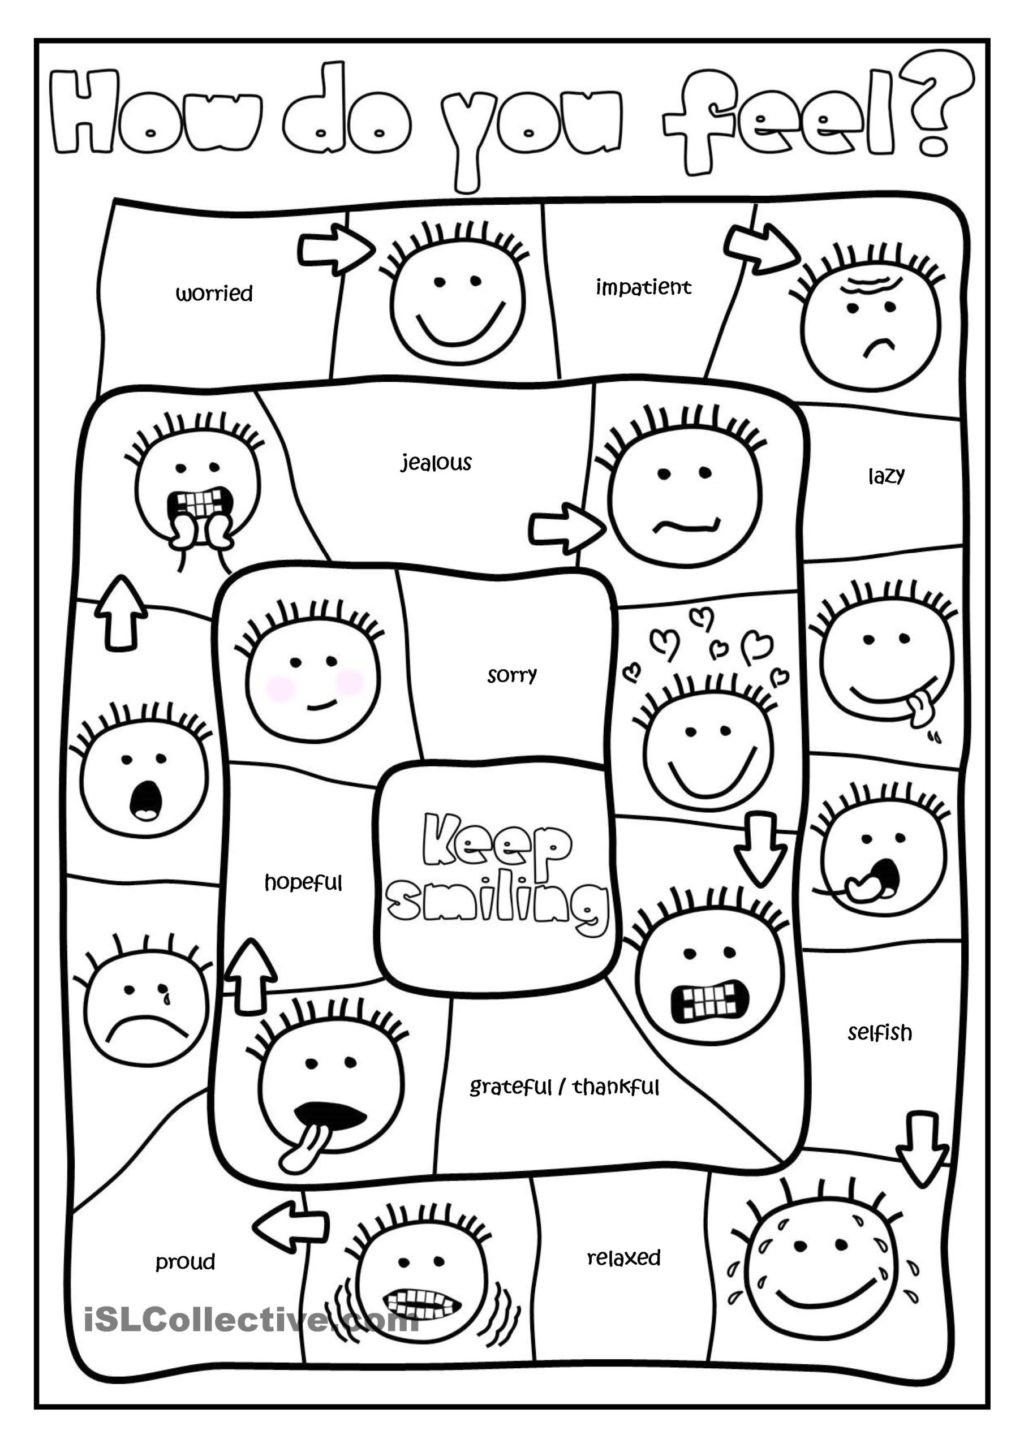 All About Me Worksheet Preschool Worksheet Free Printable Sheets for Preschool Car Coloring